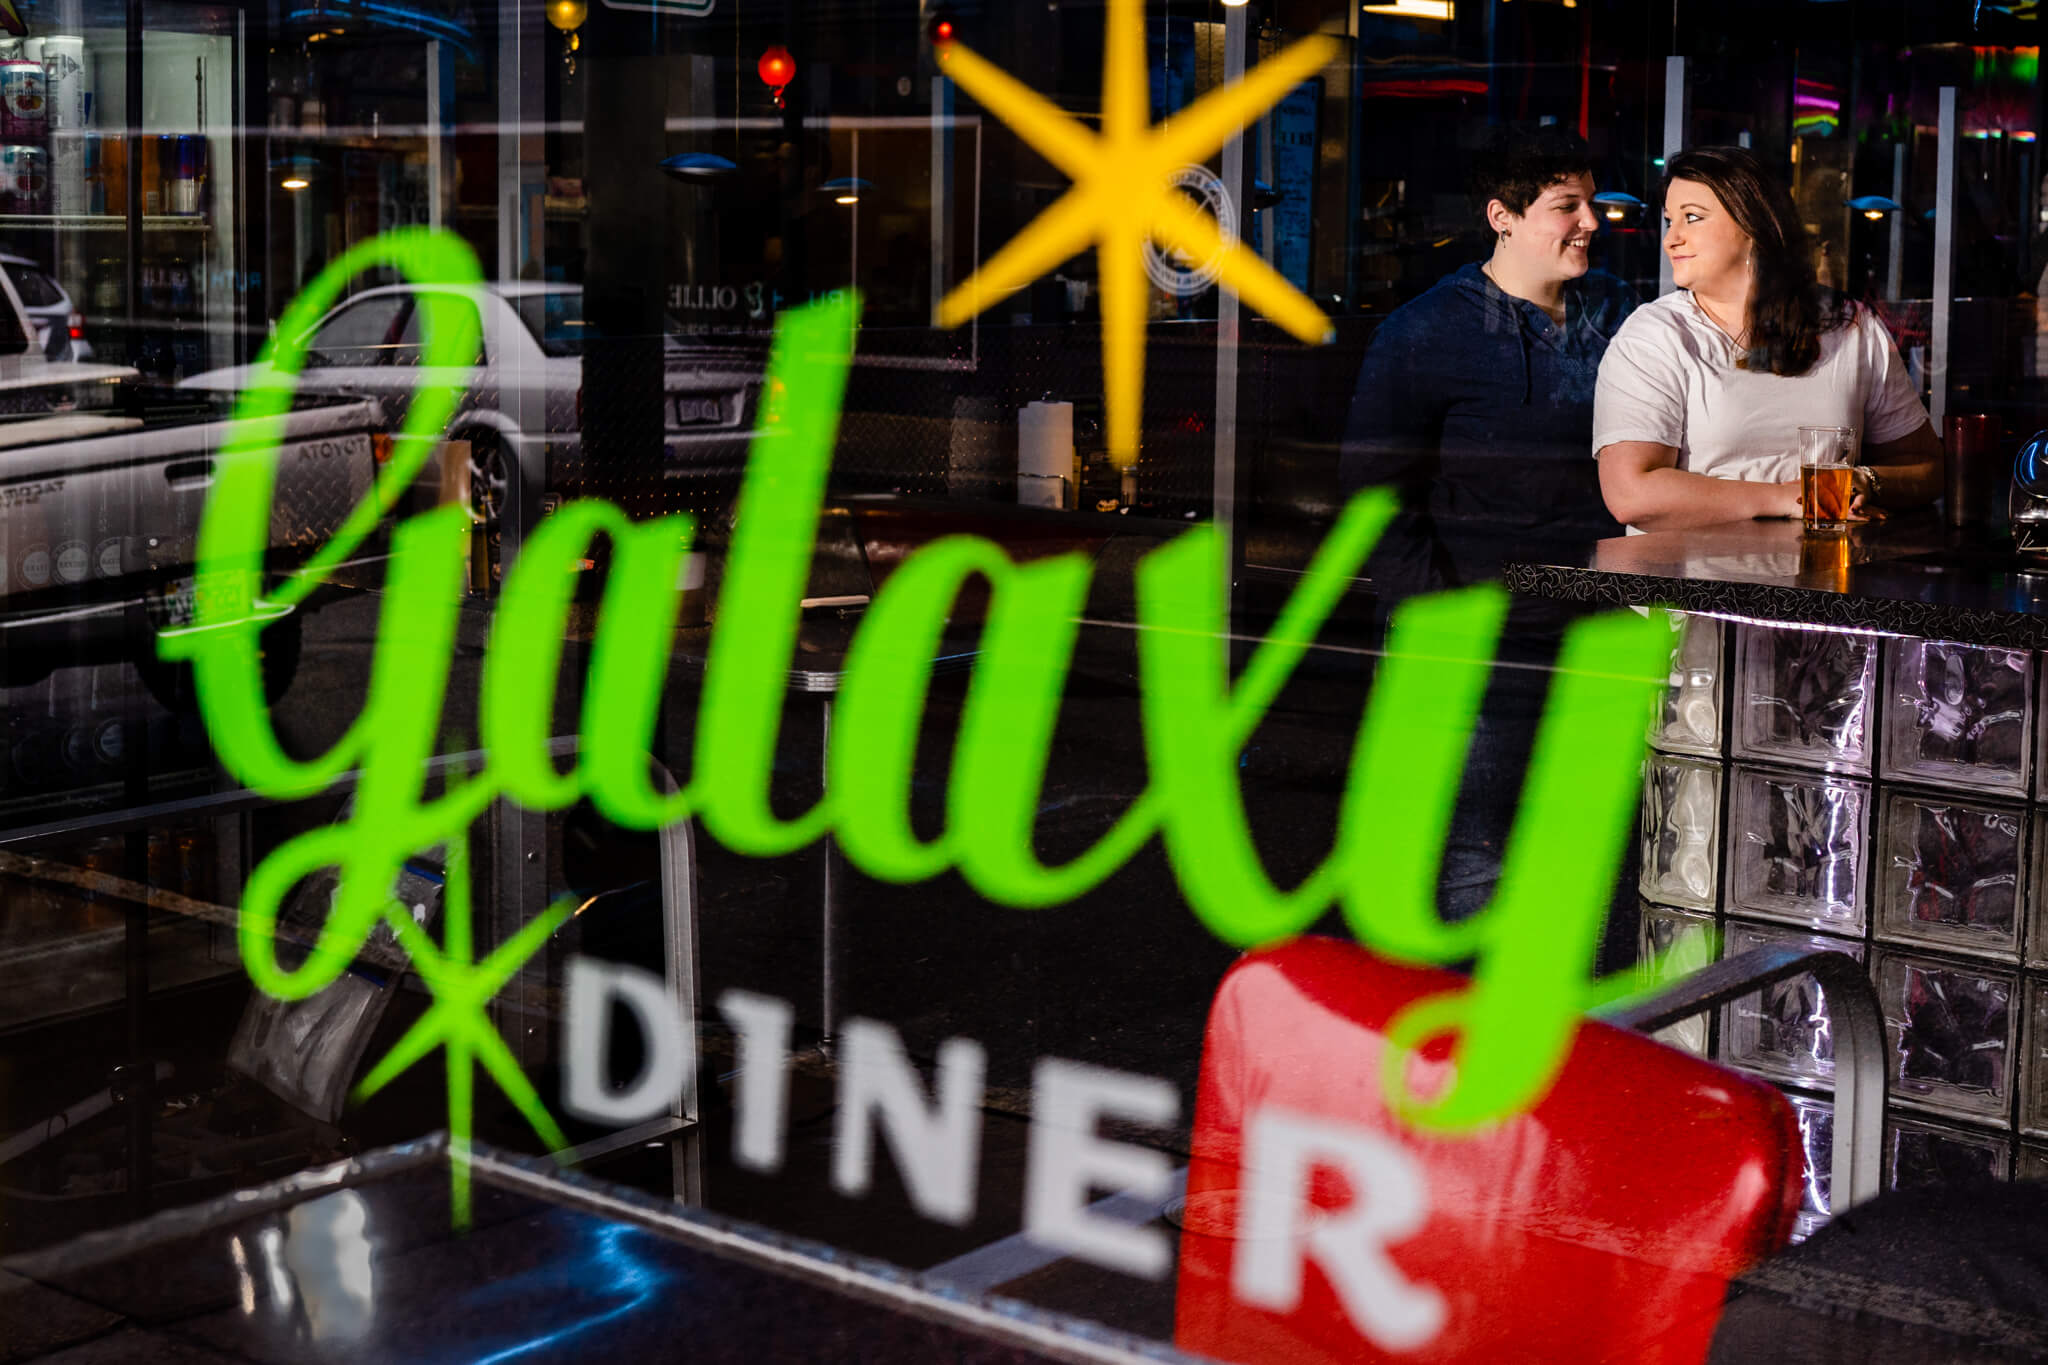 Richmond Engaged RVA Galaxy Diner Engagement Session Winter Session Snow Shoot Diner Photo Shoot-4.jpg